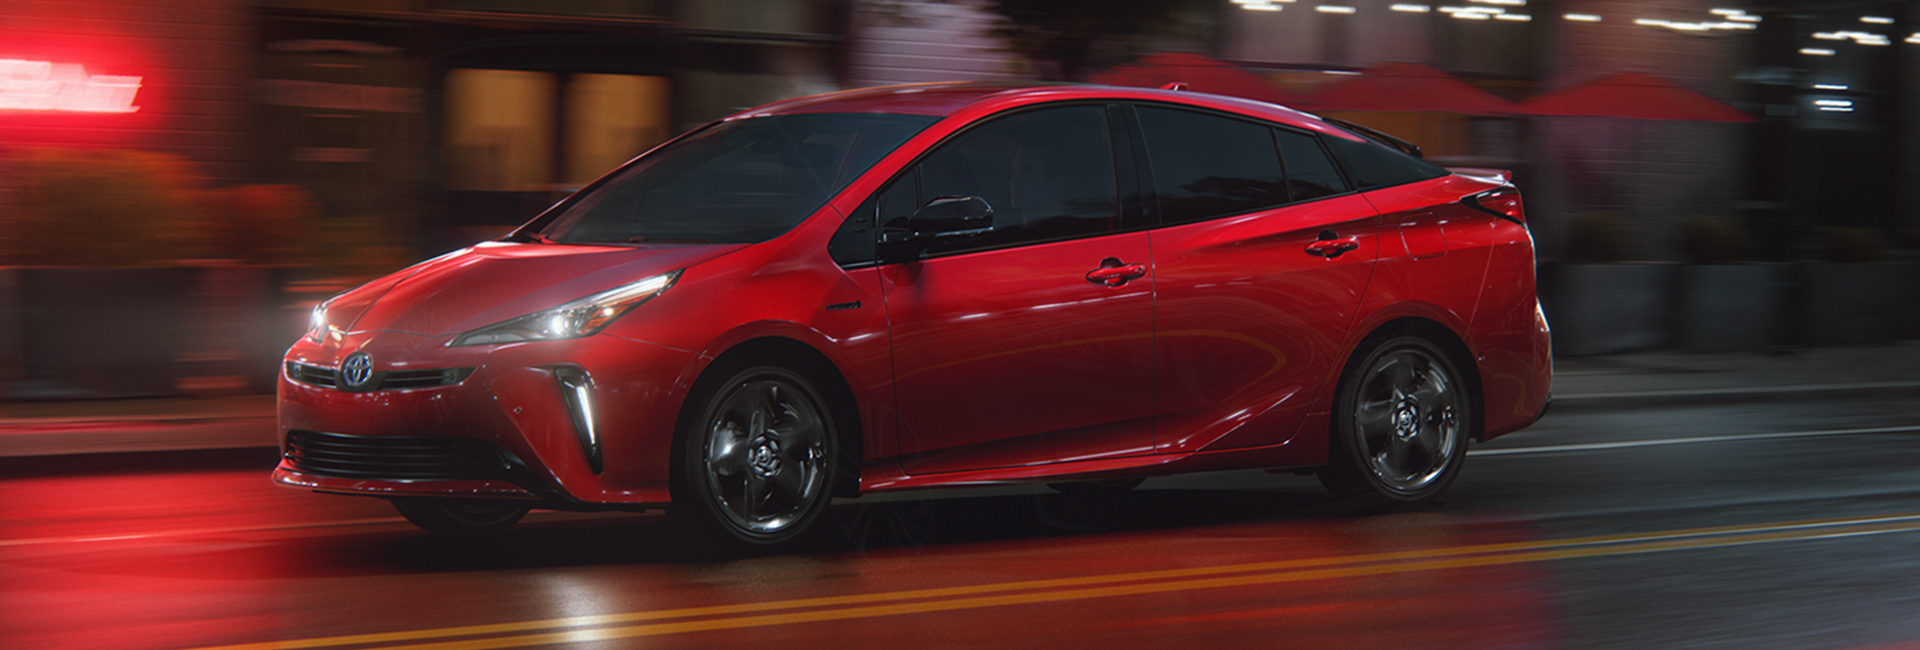 Red 2021 Prius in motion at night